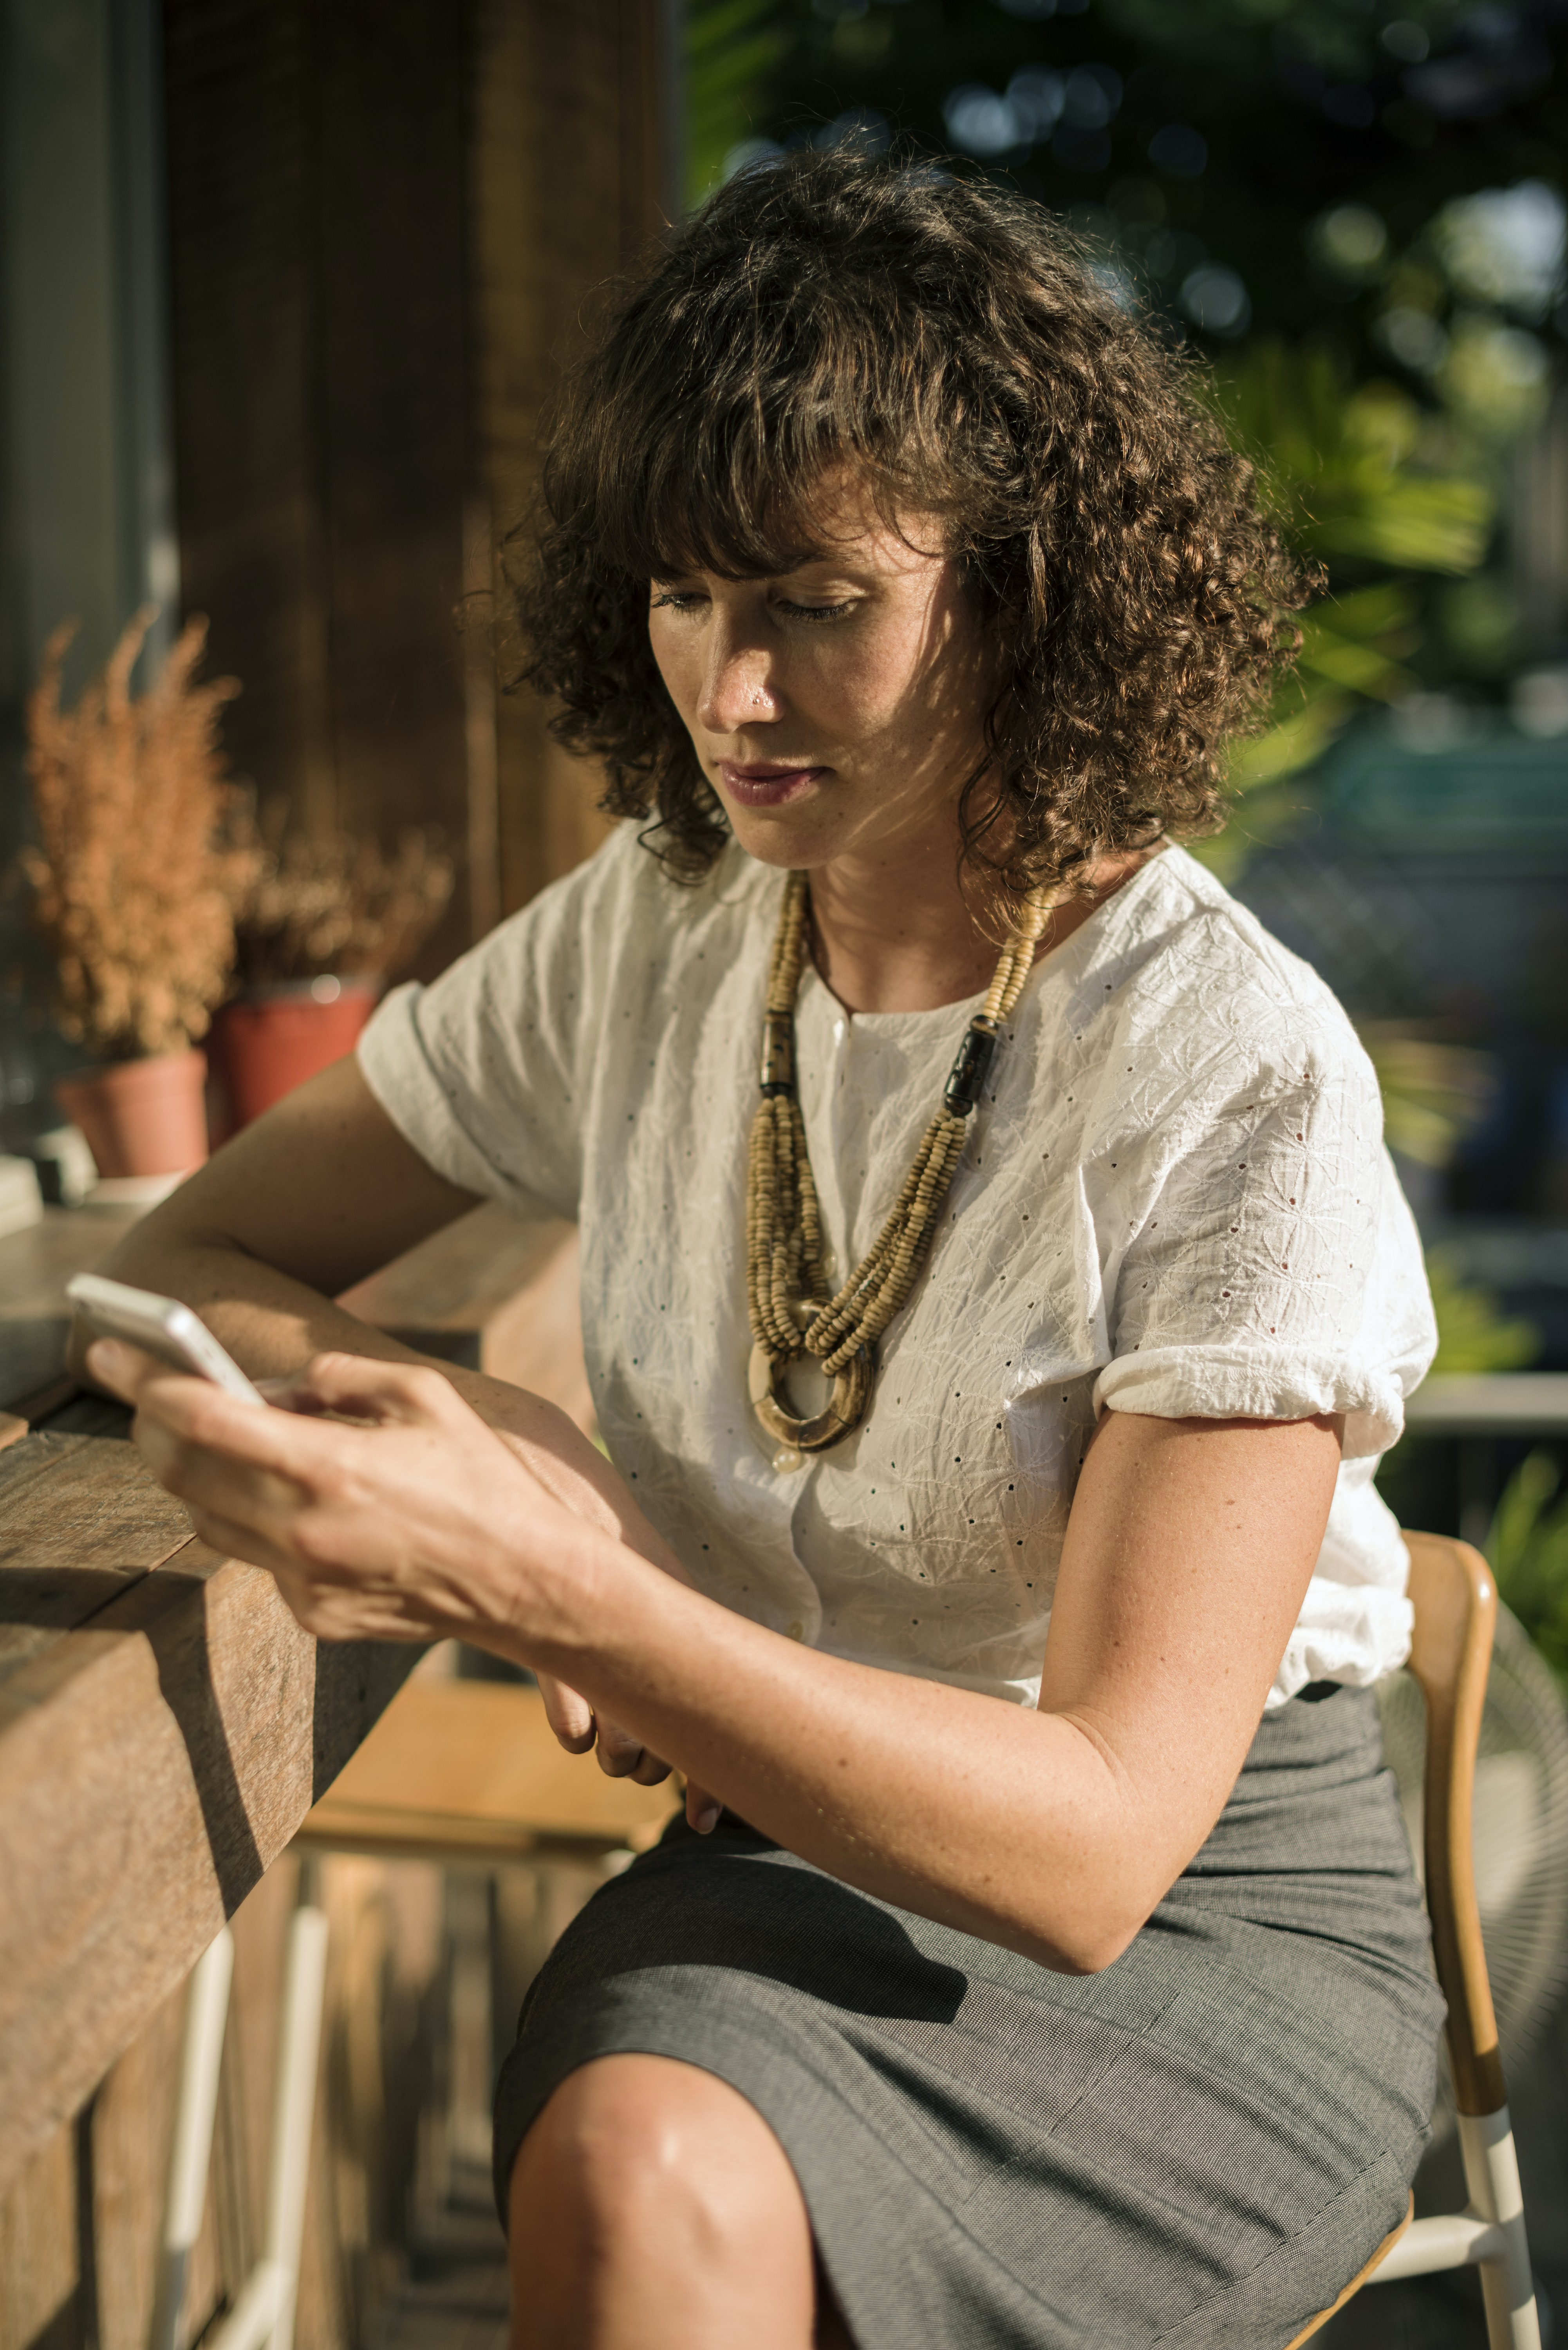 woman in white shirt using smartphone while sitting on bar stool